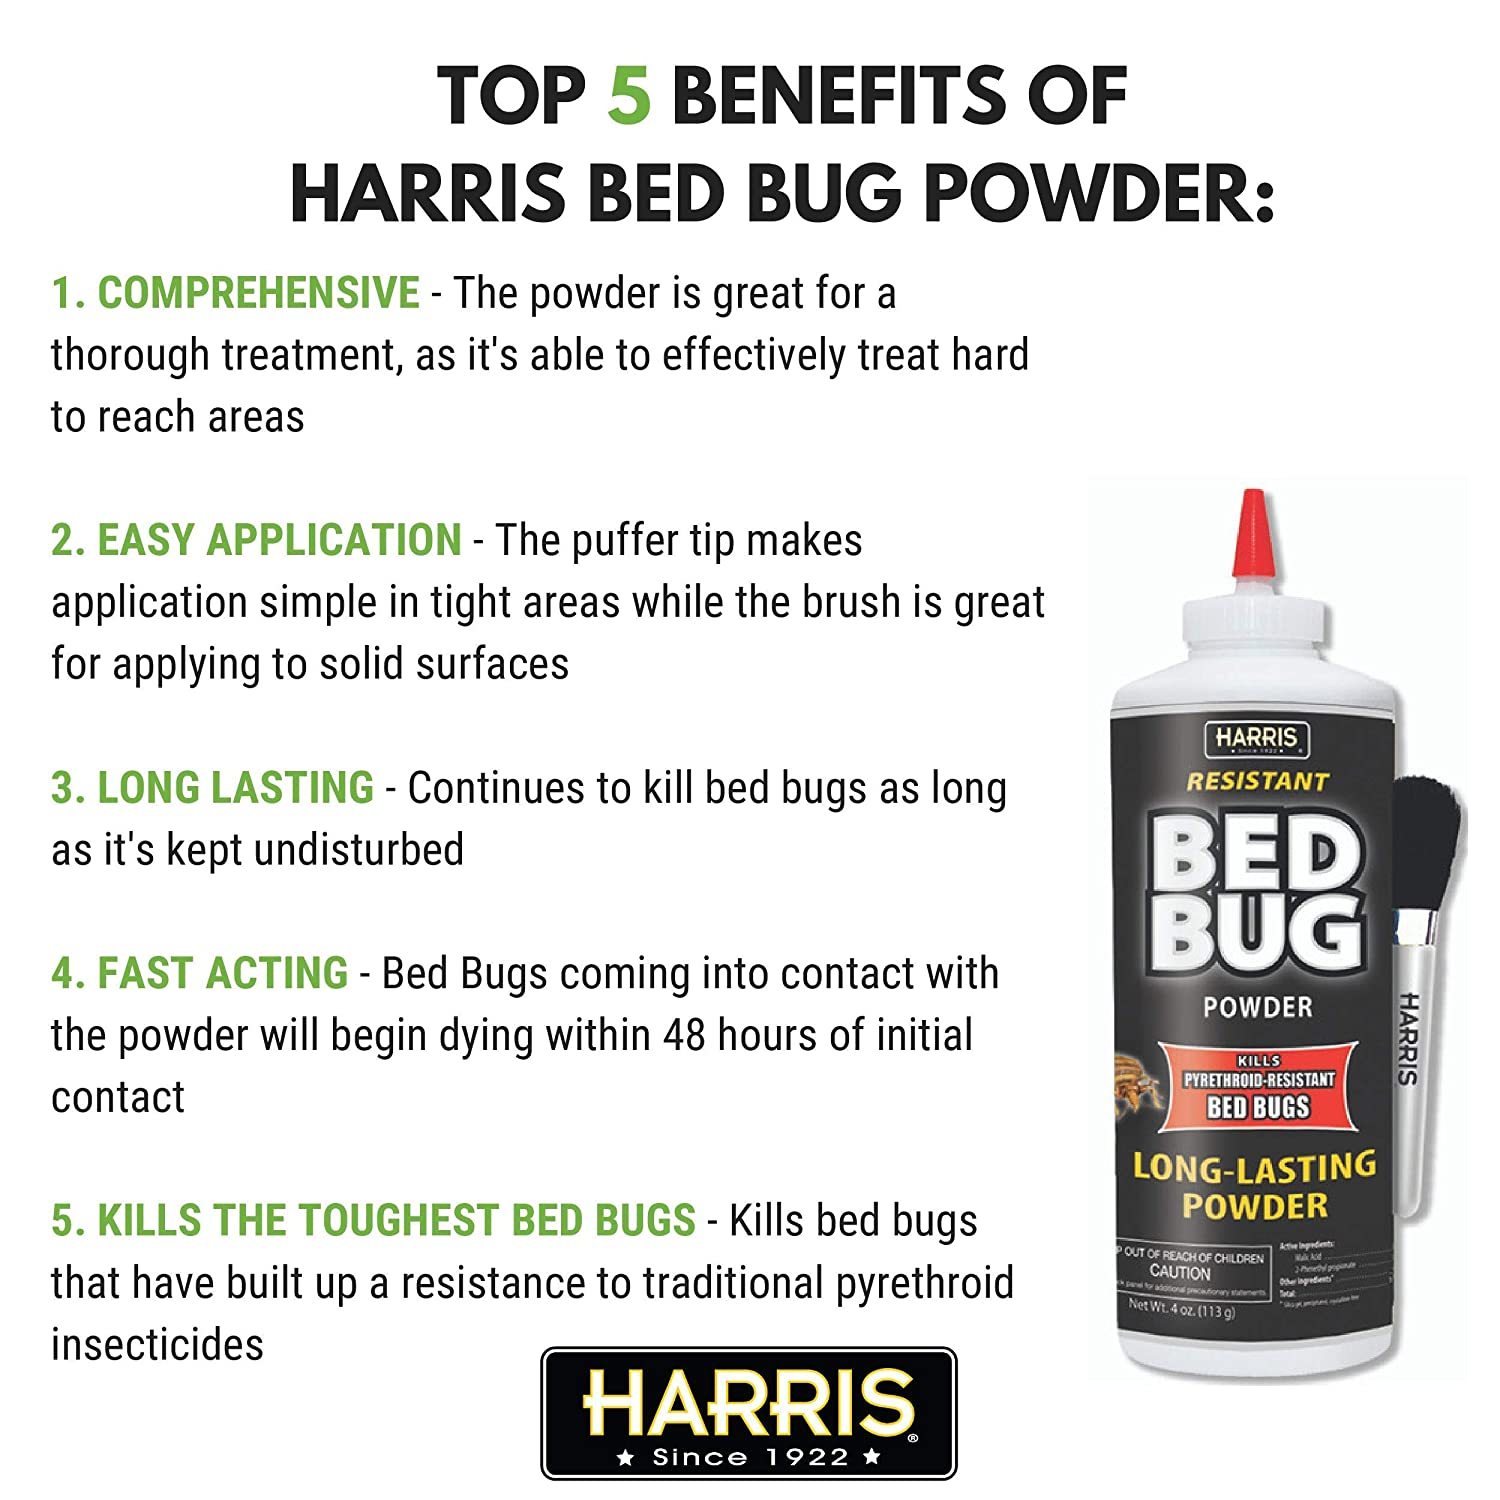 Harris Bed Bug Killer Powder, 4oz with Application Brush